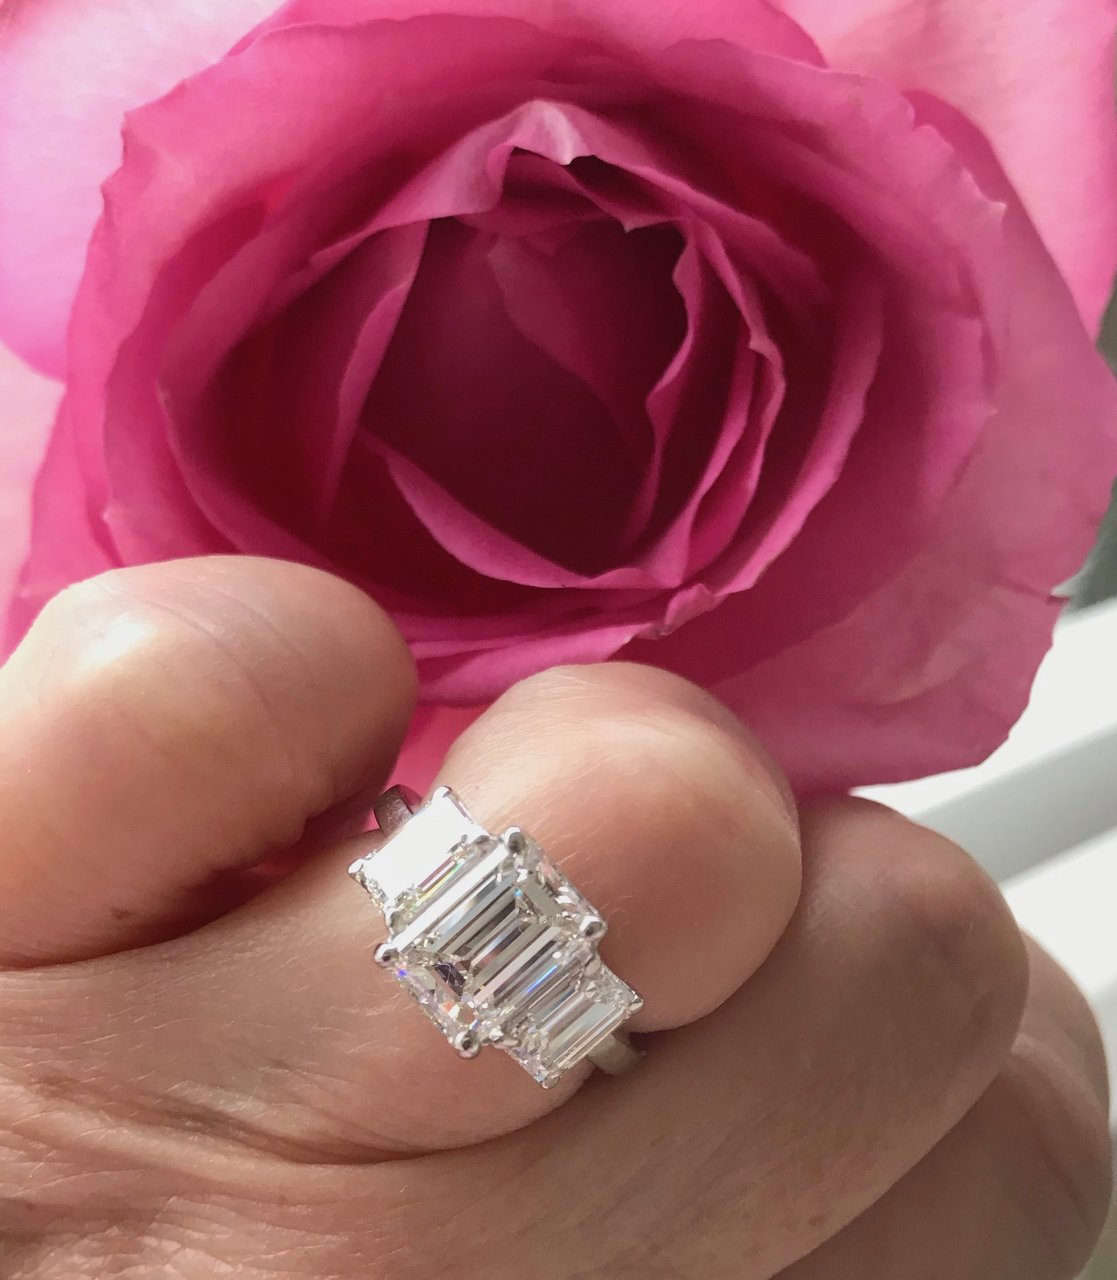 20 Year Anniversary Emerald Cut Diamond Ring